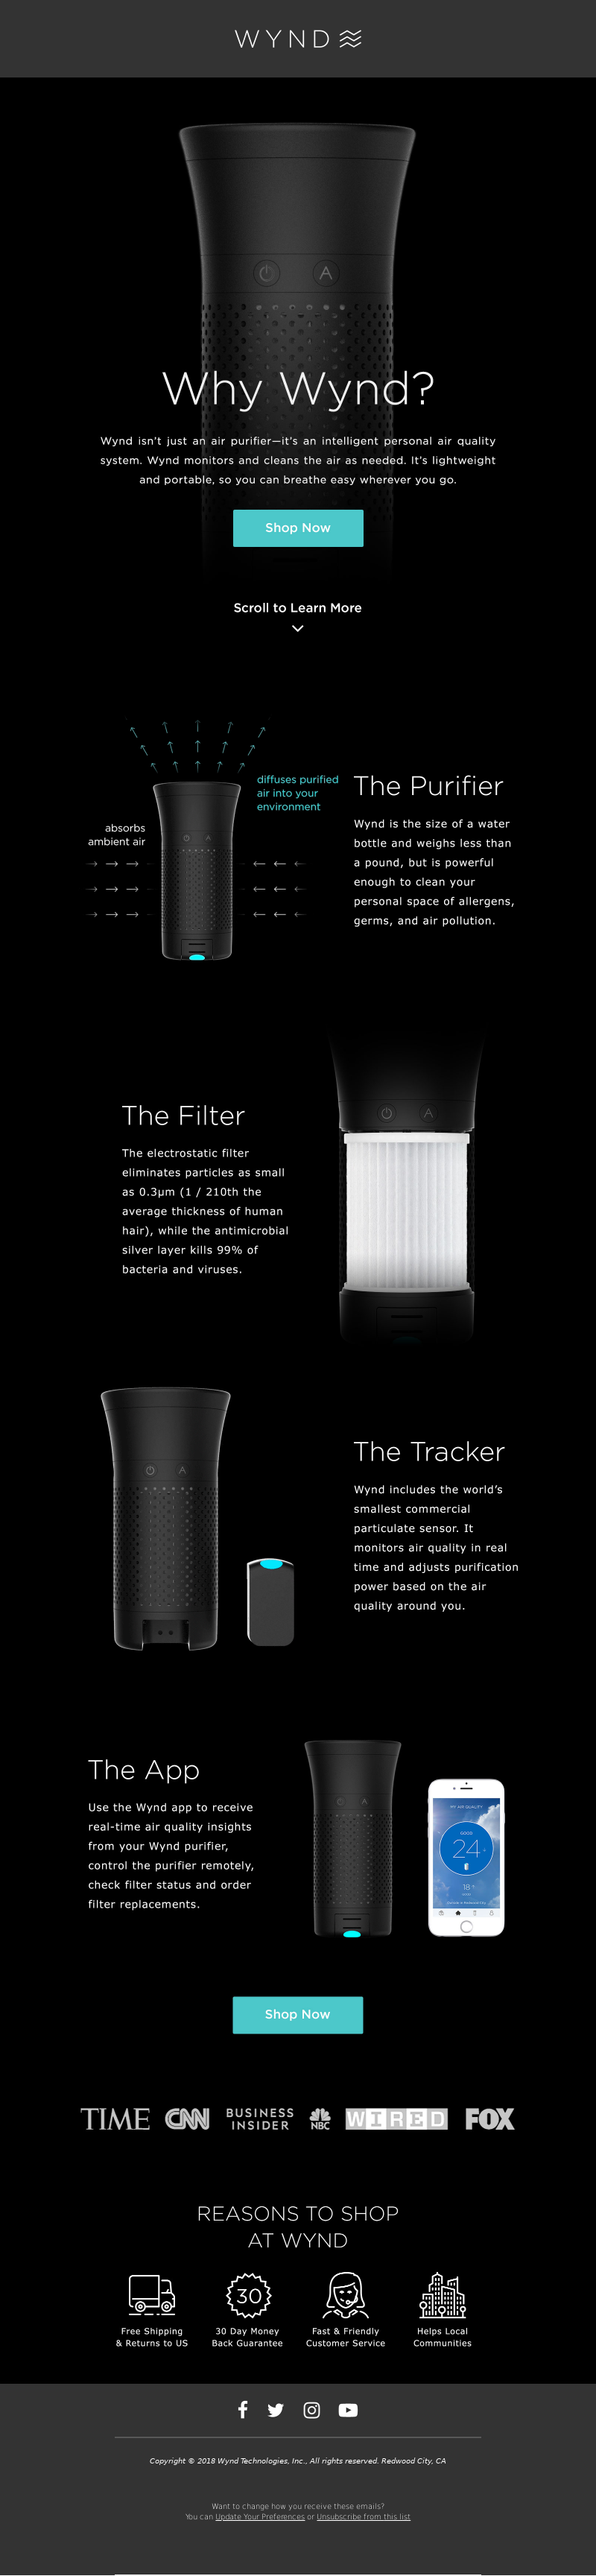 Wynd Why Wynd? Scroll to Learn More The Purifier The Filter The Tracker The